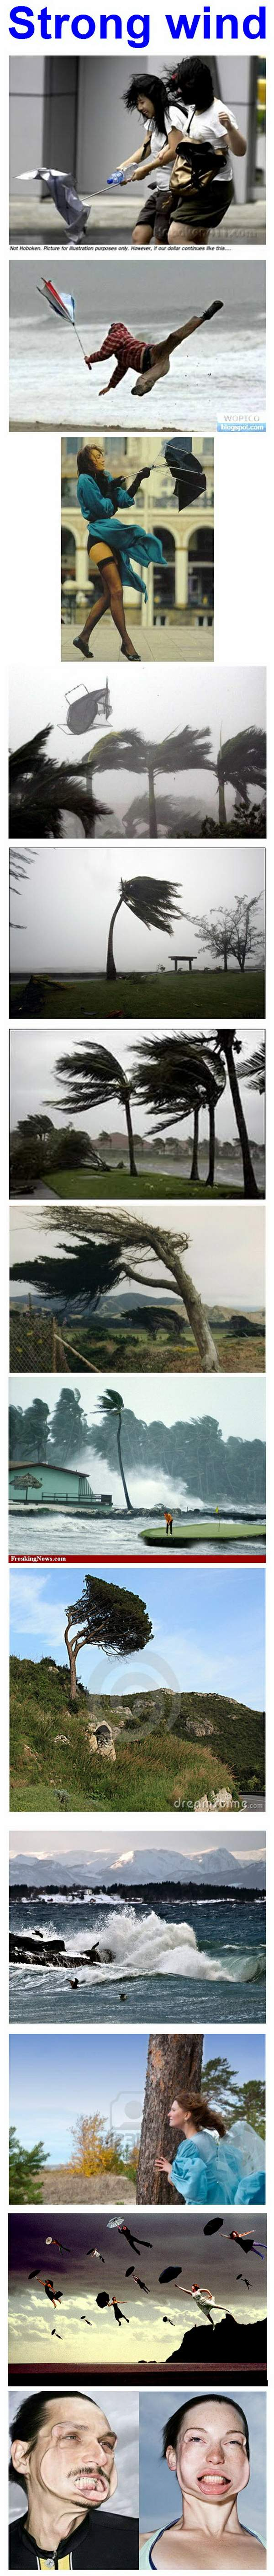 strong wind-00